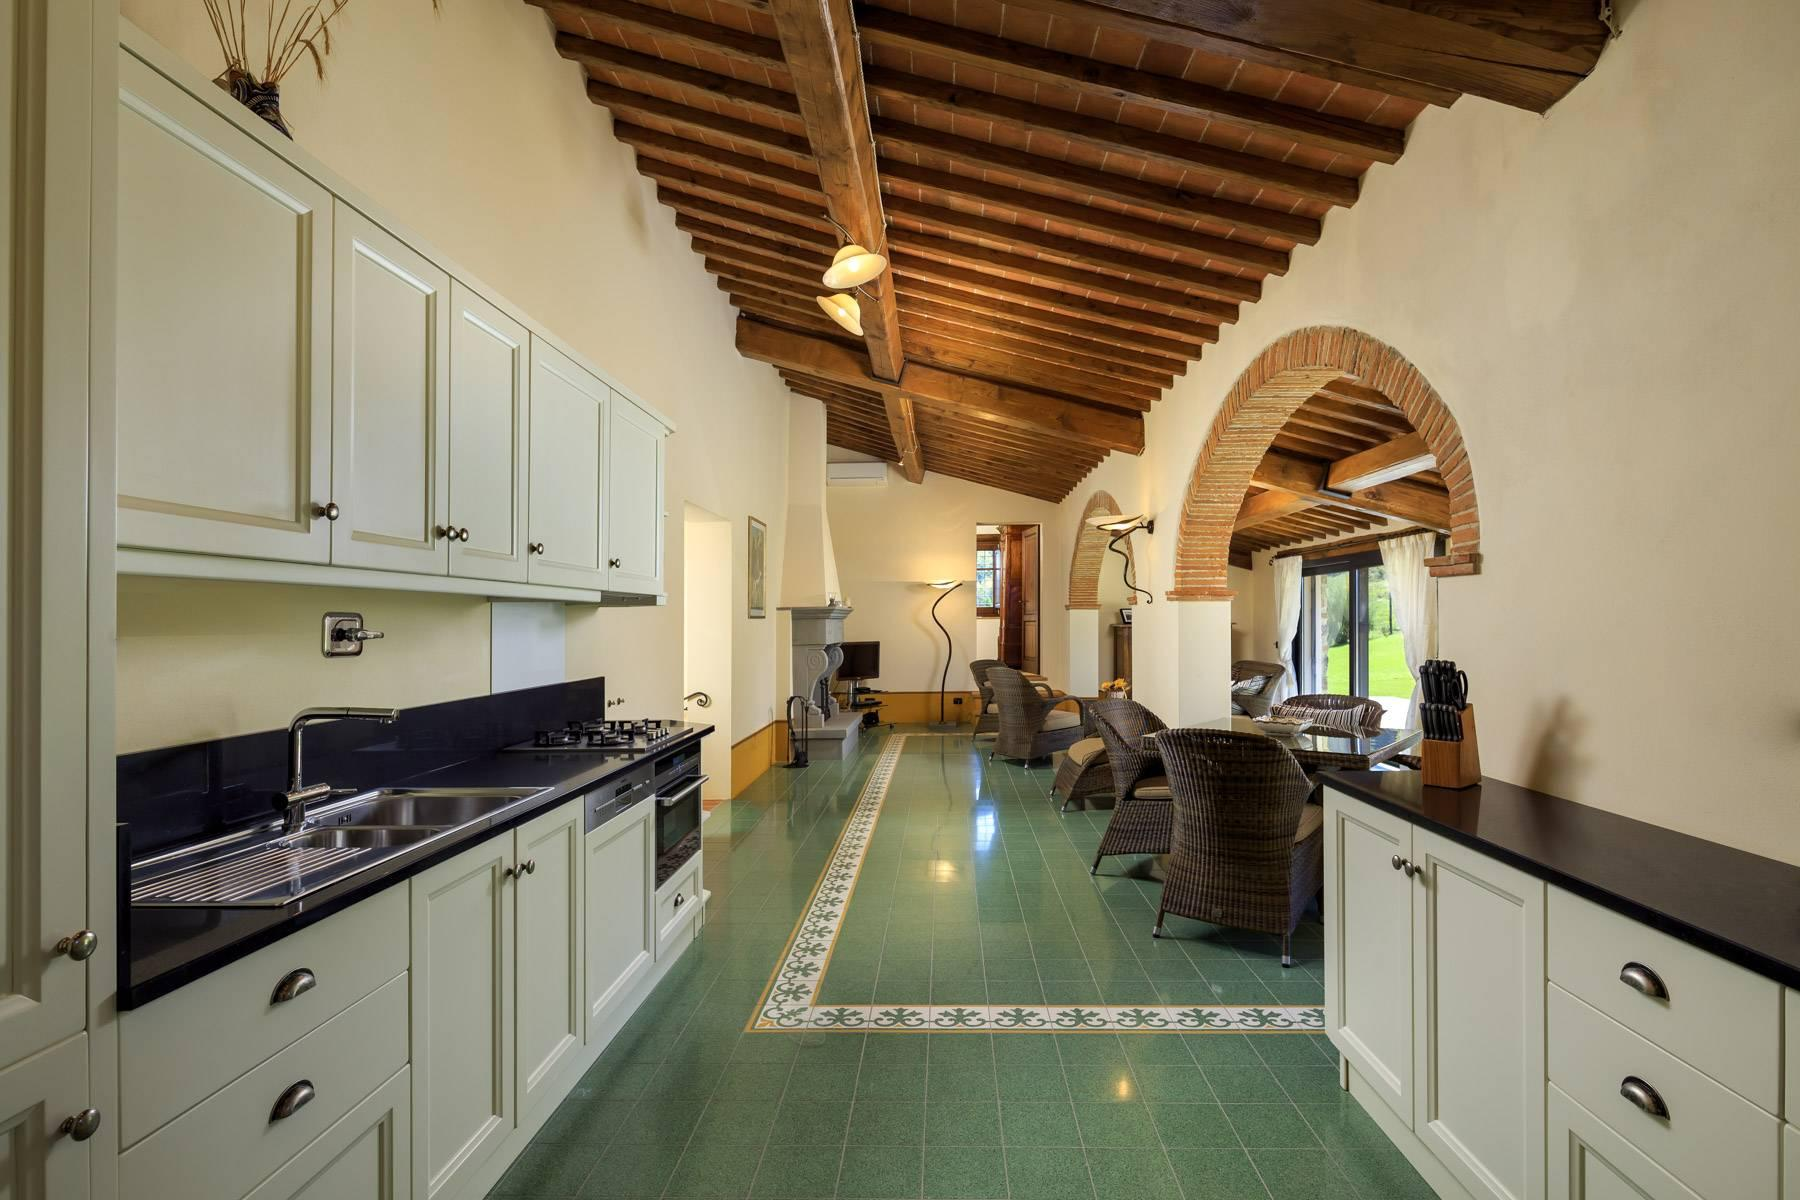 Marvelous estate with views over the Casentino valley - 19